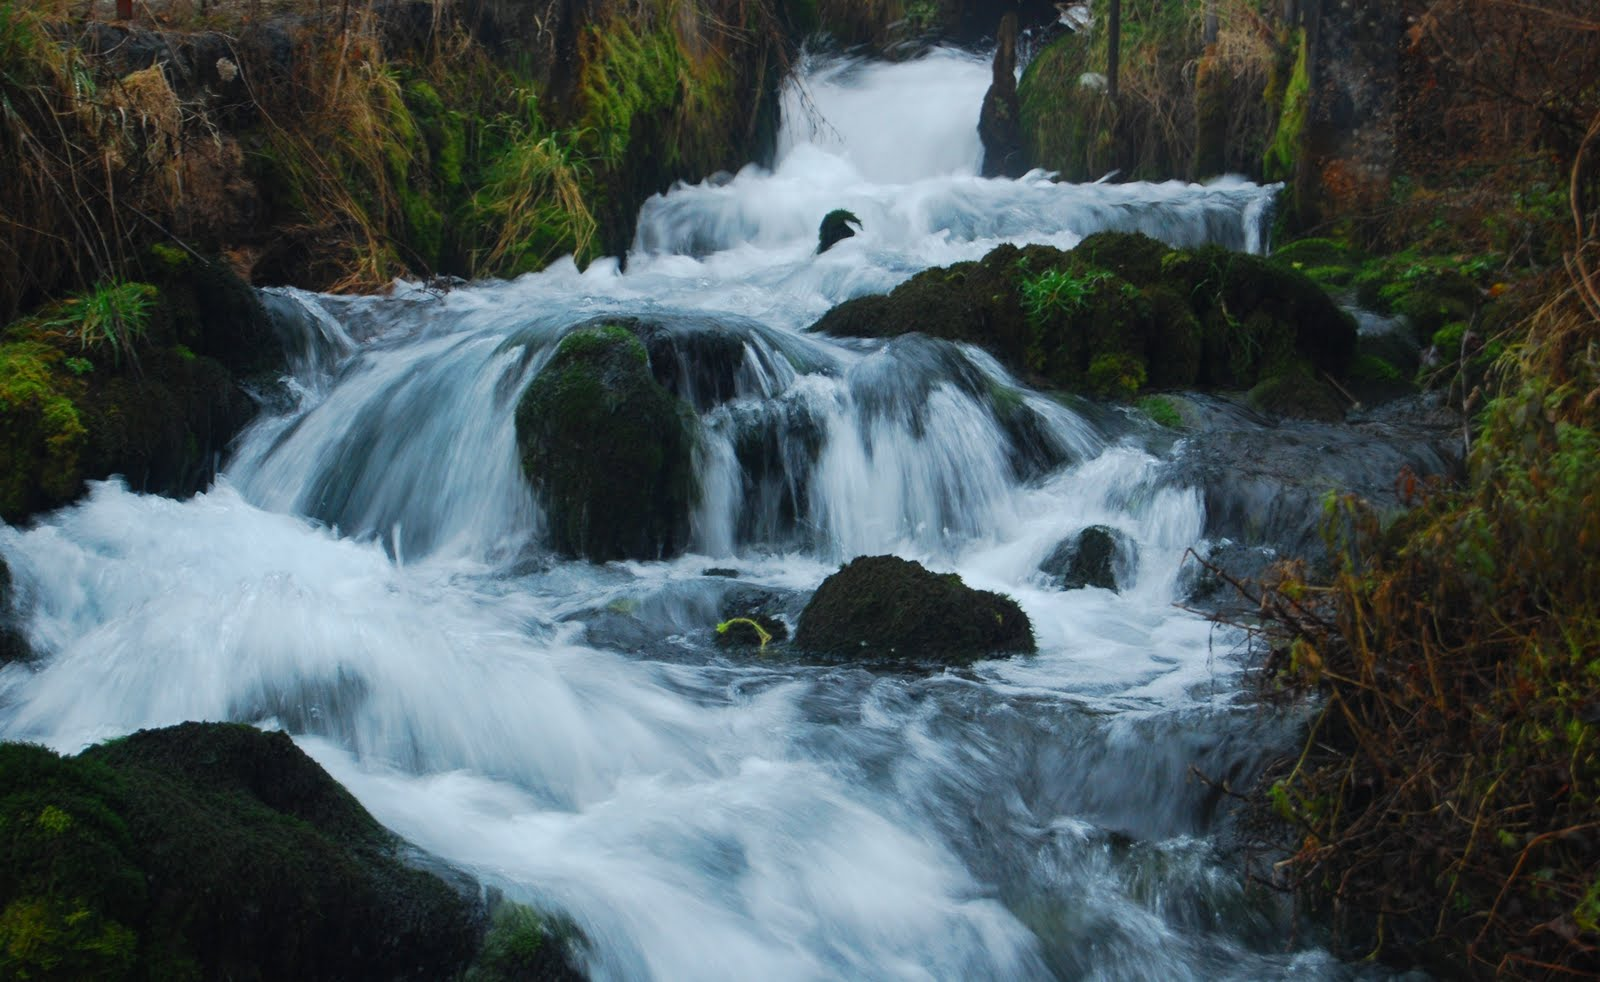 colored garden: The sound and beauty of rushing water